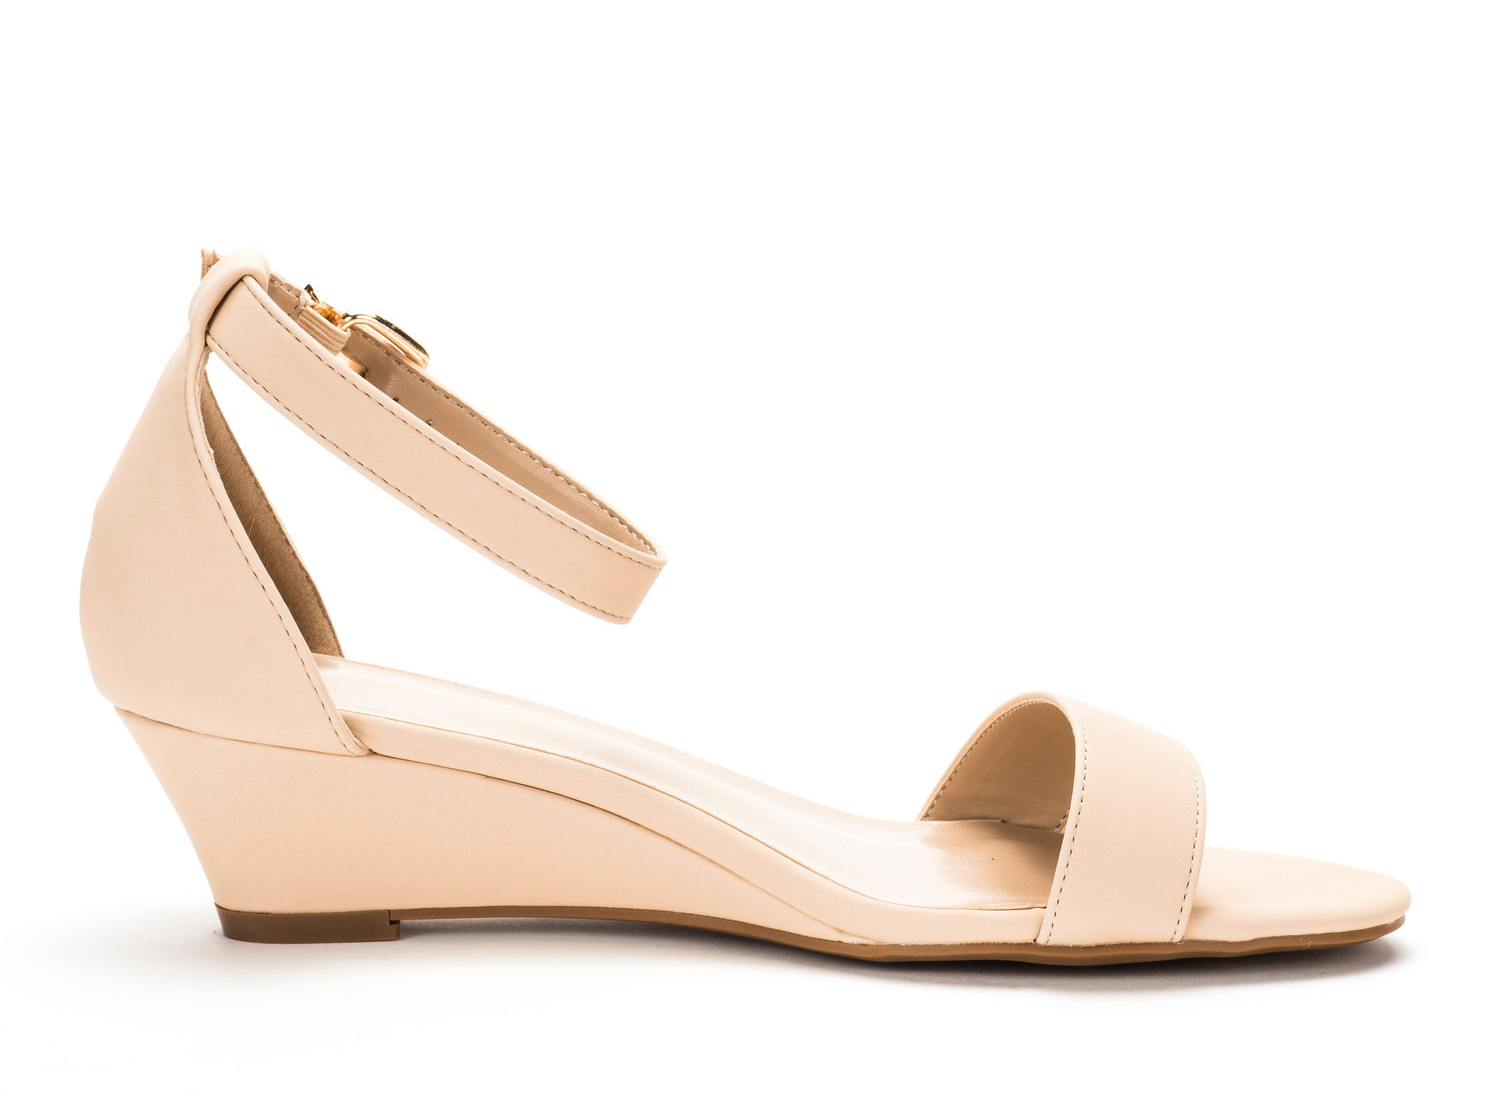 DREAM-PAIRS-Women-039-s-Ankle-Strap-Low-Wedge-Sandals-Open-Toe-Casual-Dress-Shoes thumbnail 27